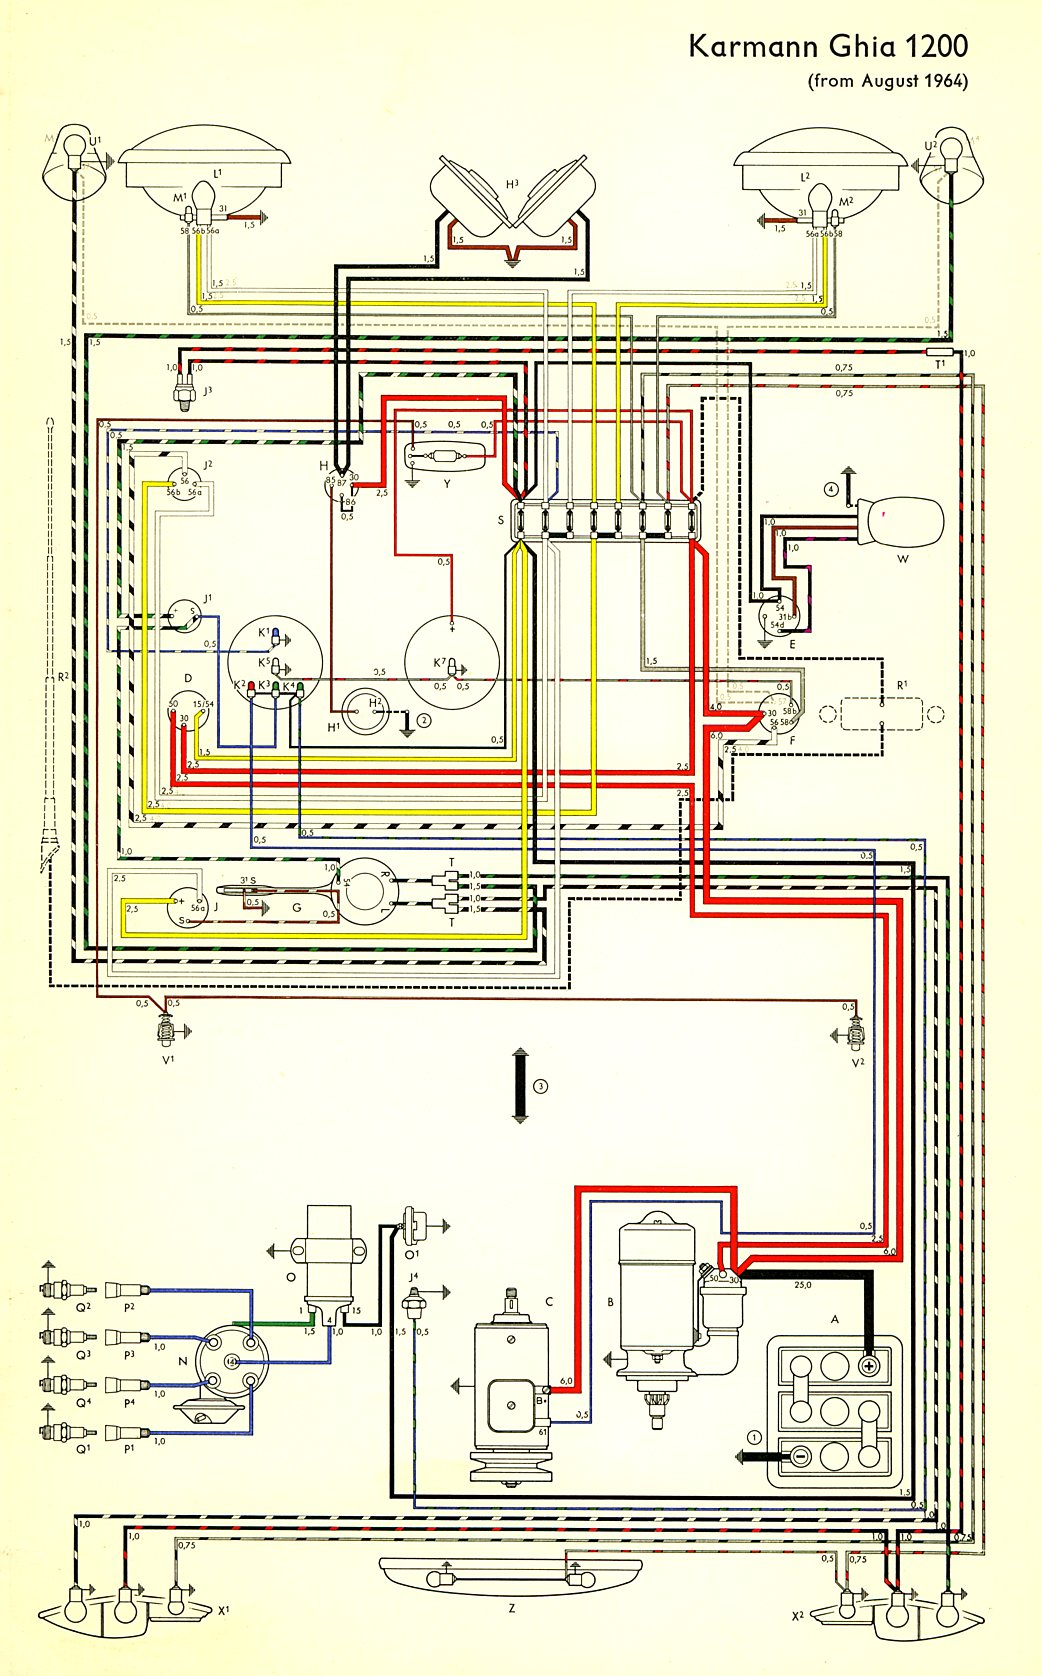 1964 Vw Beetle Wiring Diagram Free Diagrams Buggy Schematic Images Gallery